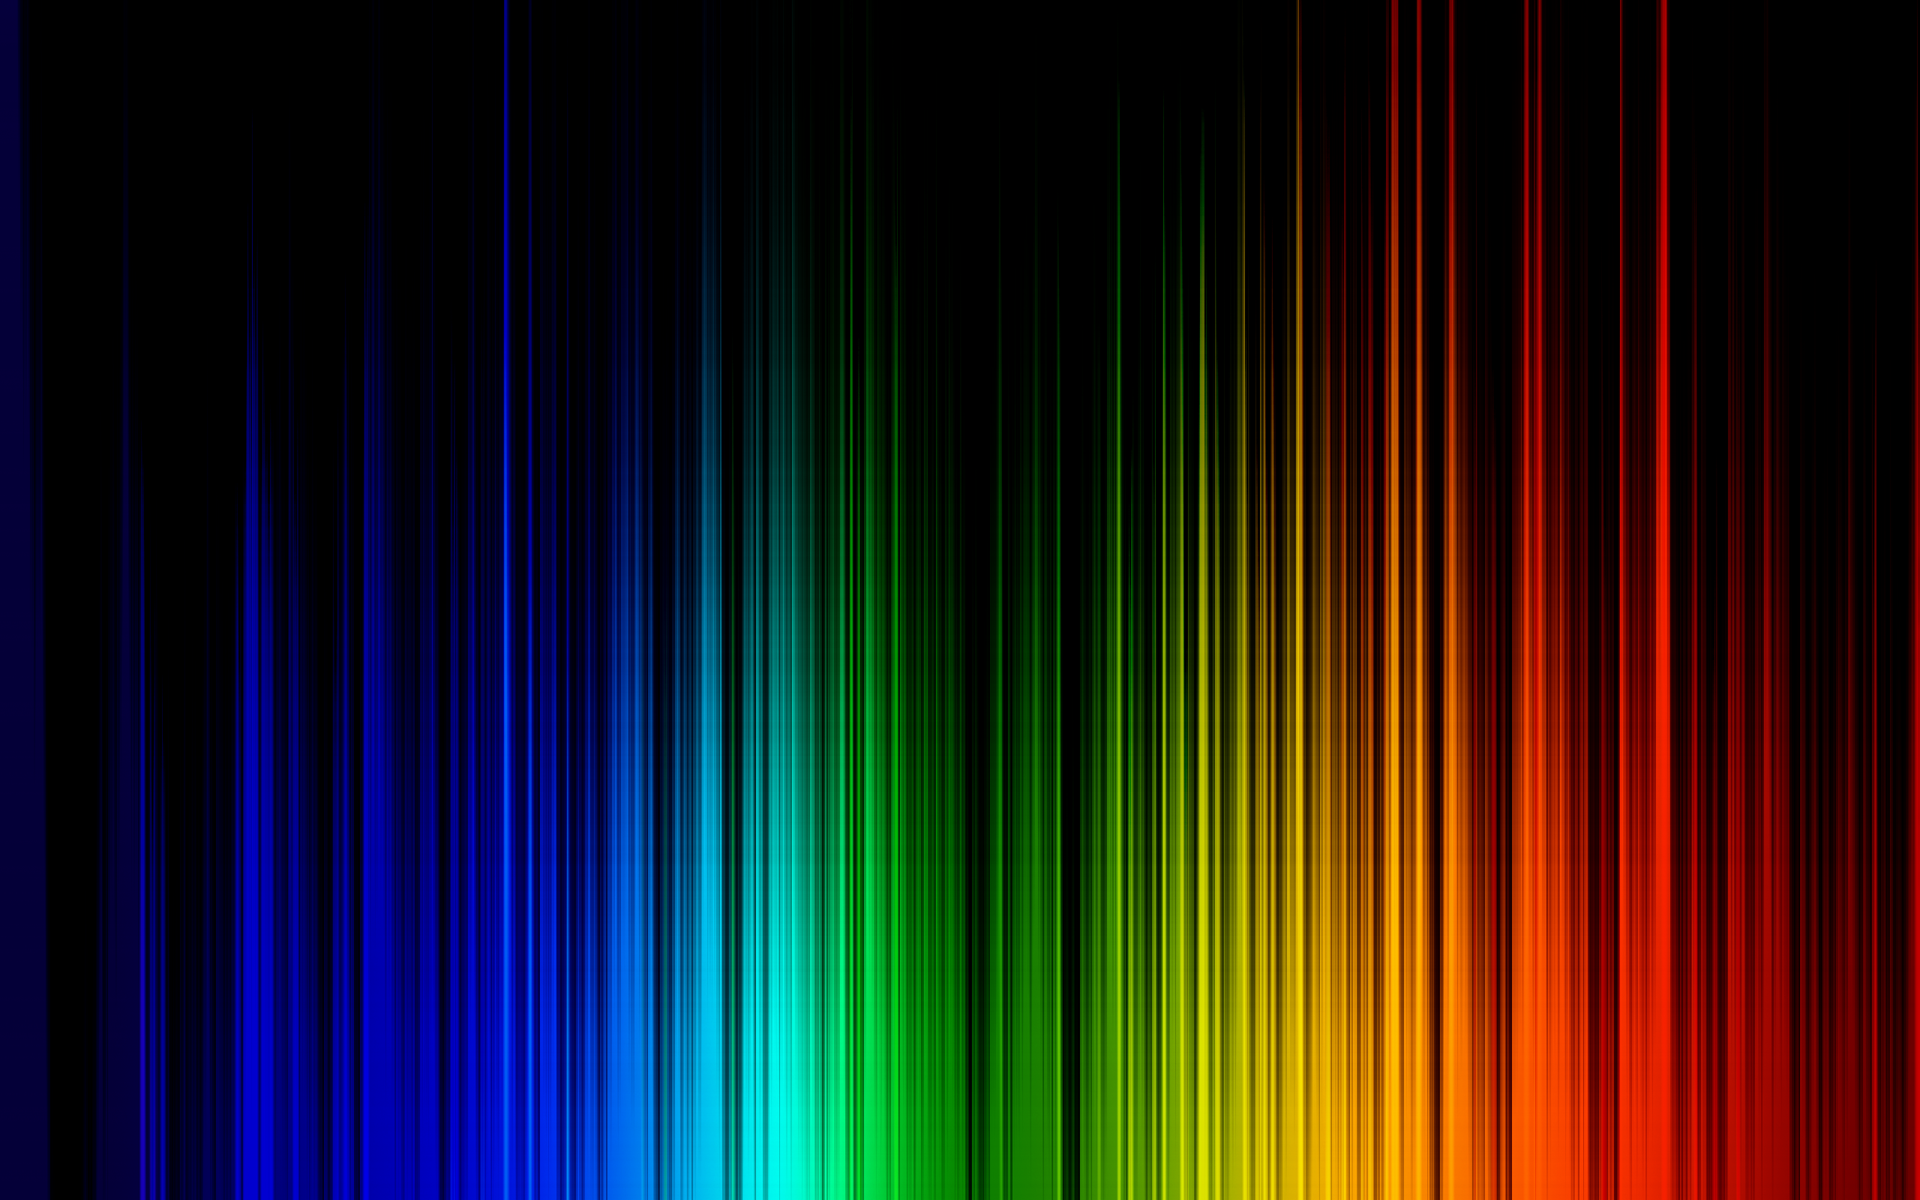 Images of Neon | 1920x1200